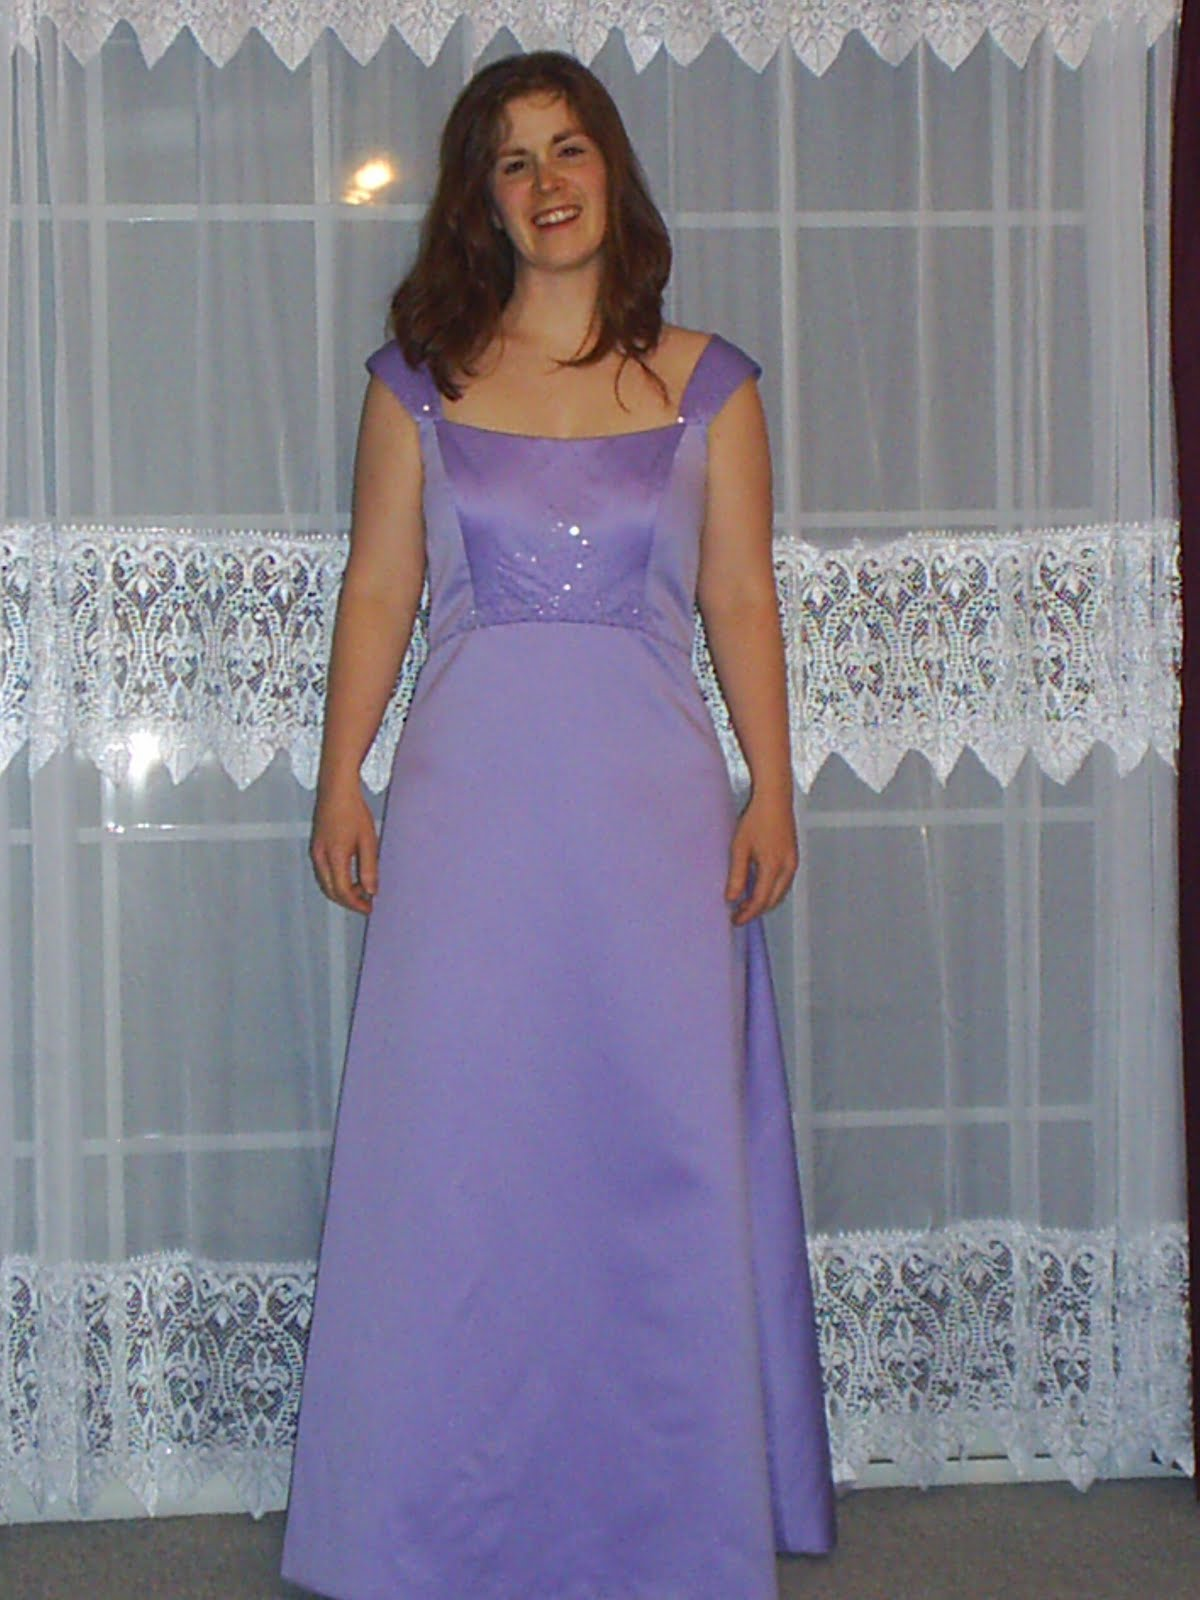 The Recital Dresses, Part Two: I Need Your Help!